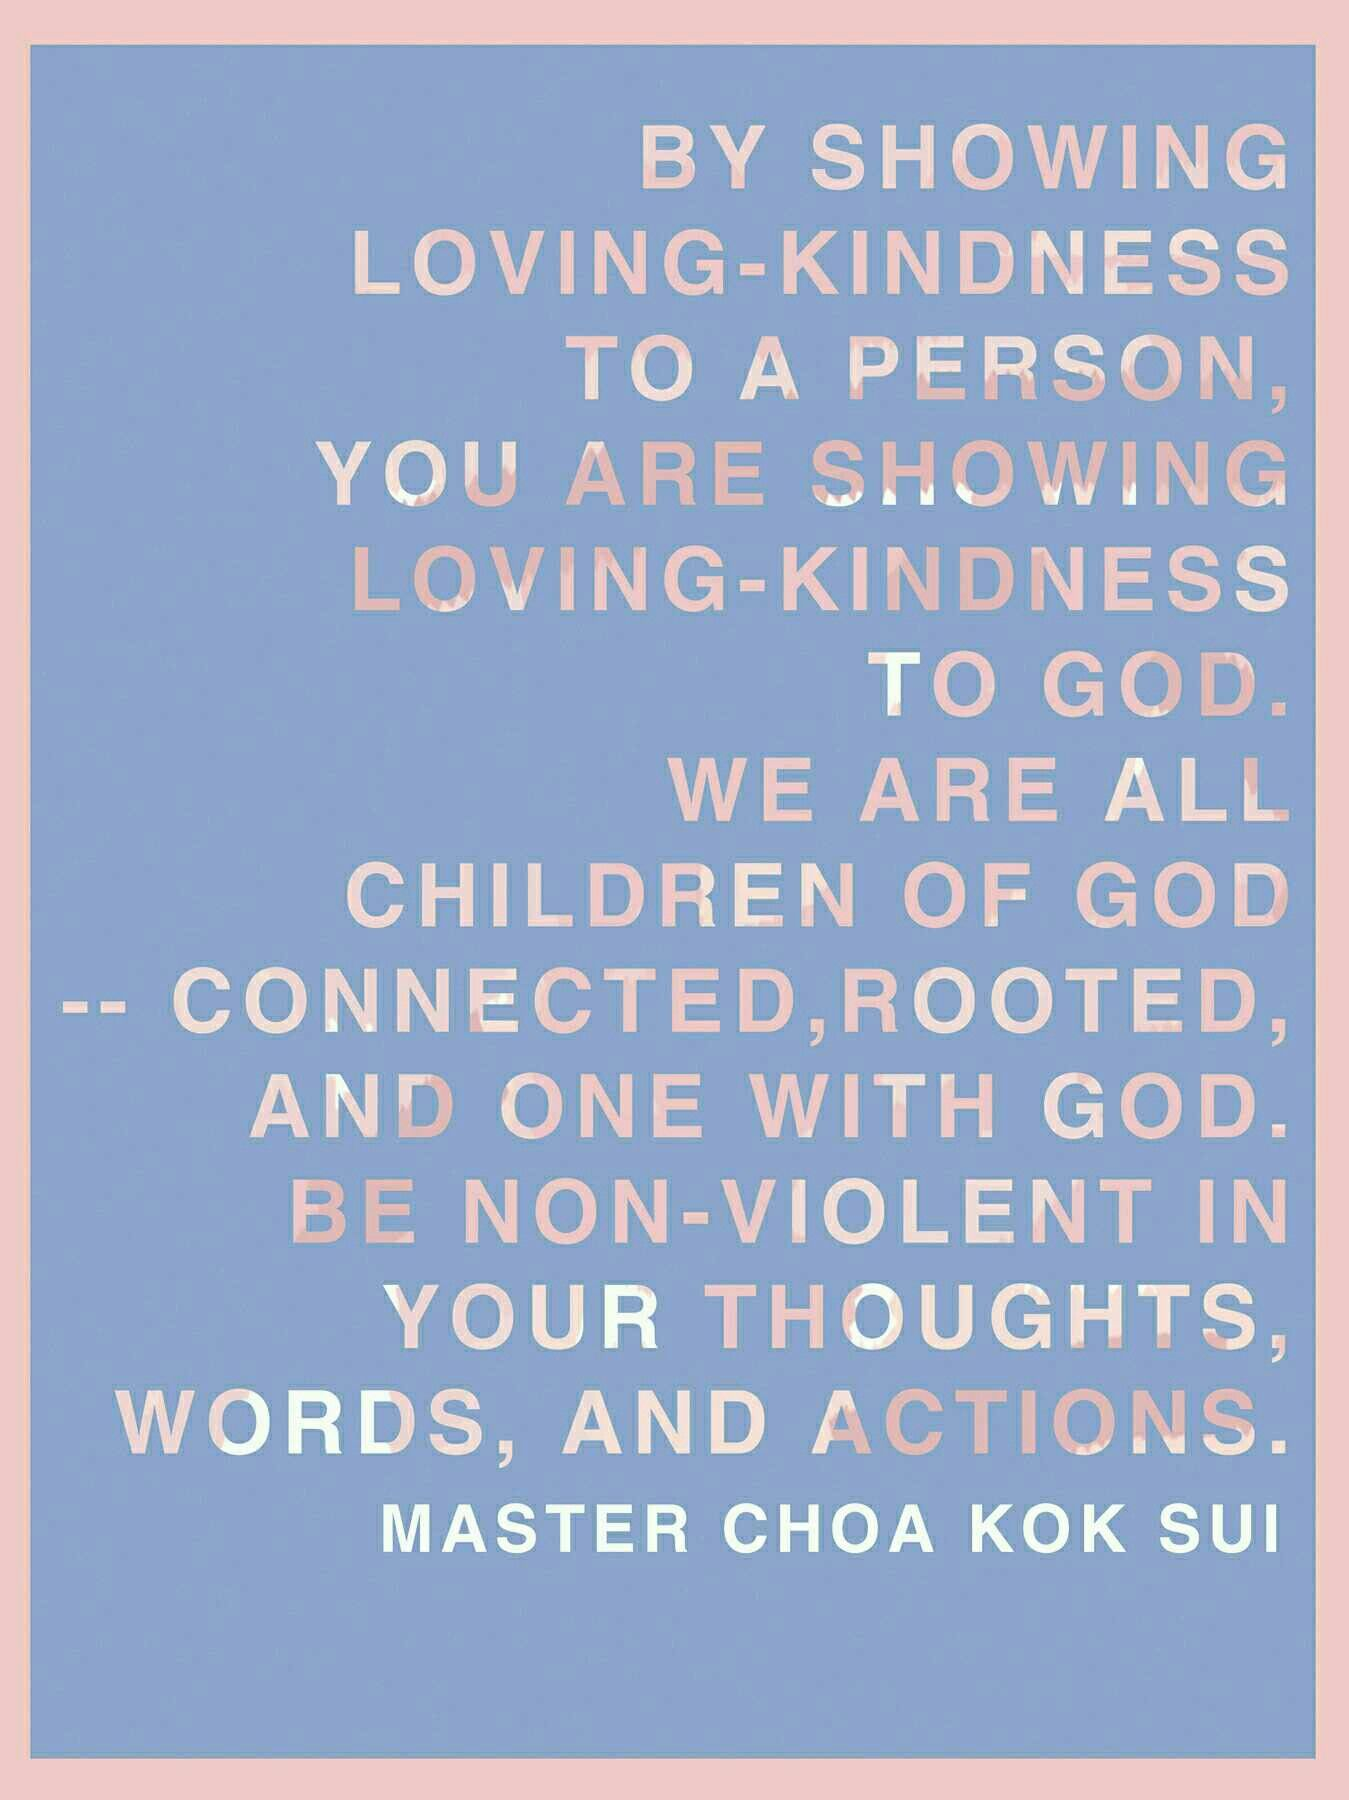 Loving Kindness Quotes Quotes Unfoldapp Mcks Lovingkindness God Thoughts Words